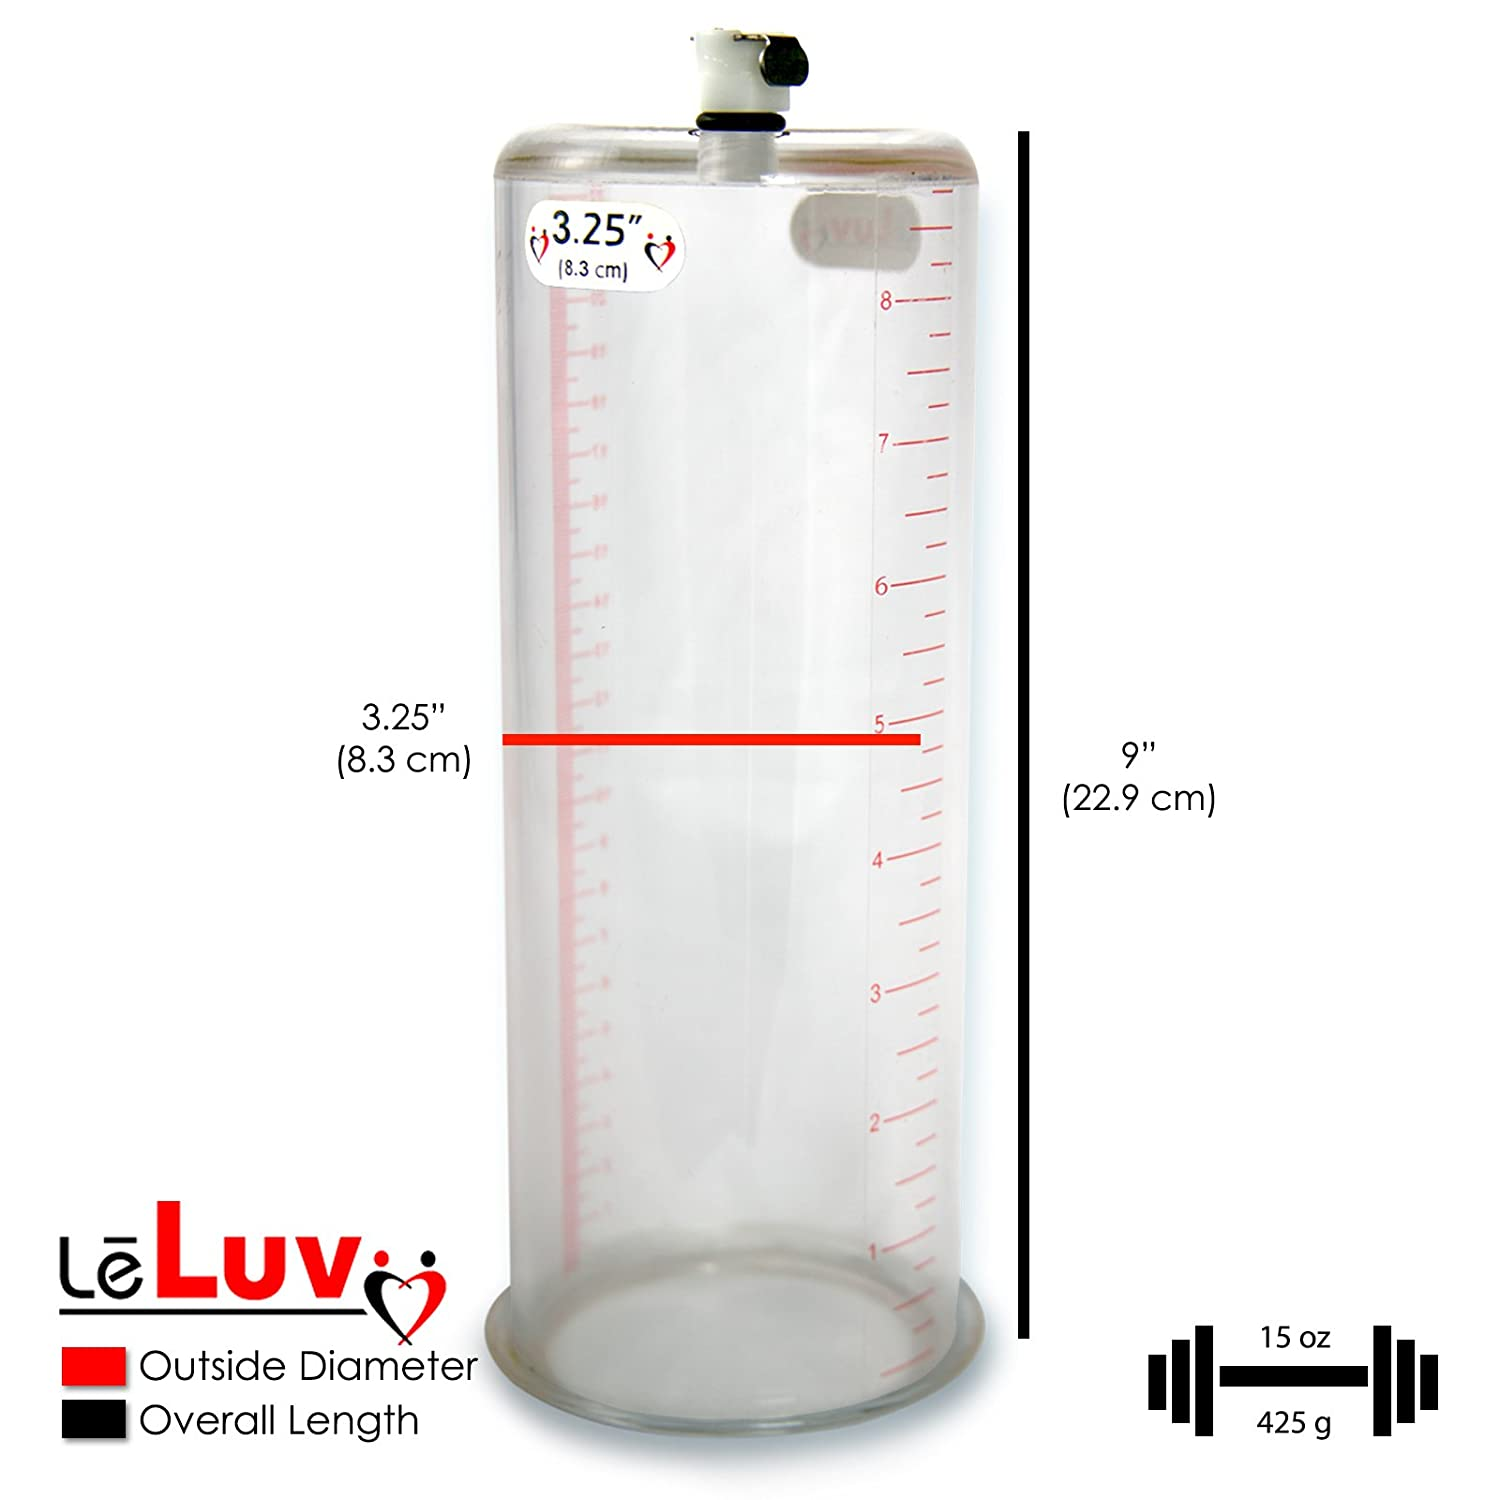 Amazon.com: LeLuv Vacuum Cylinder for Penis Pumps Seamless Untapered  Medical-Grade Clear Acrylic with Measurement Marks and Locking Fitting 3.25  Inch x 9 ...